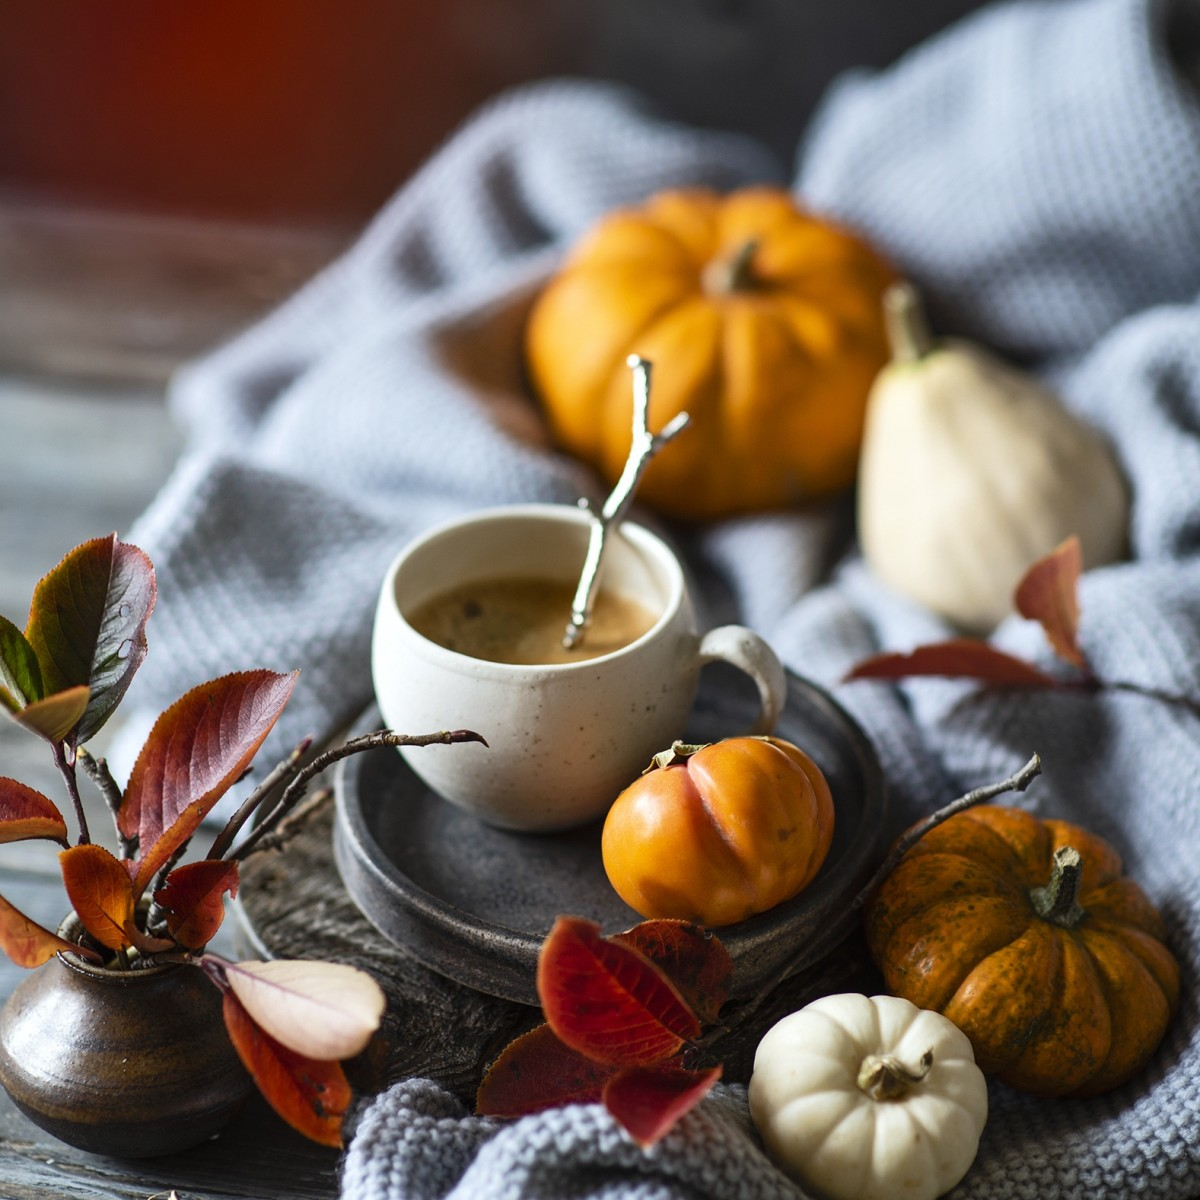 Jigsaw Puzzle Solve jigsaw puzzles online - Pumpkin and coffee